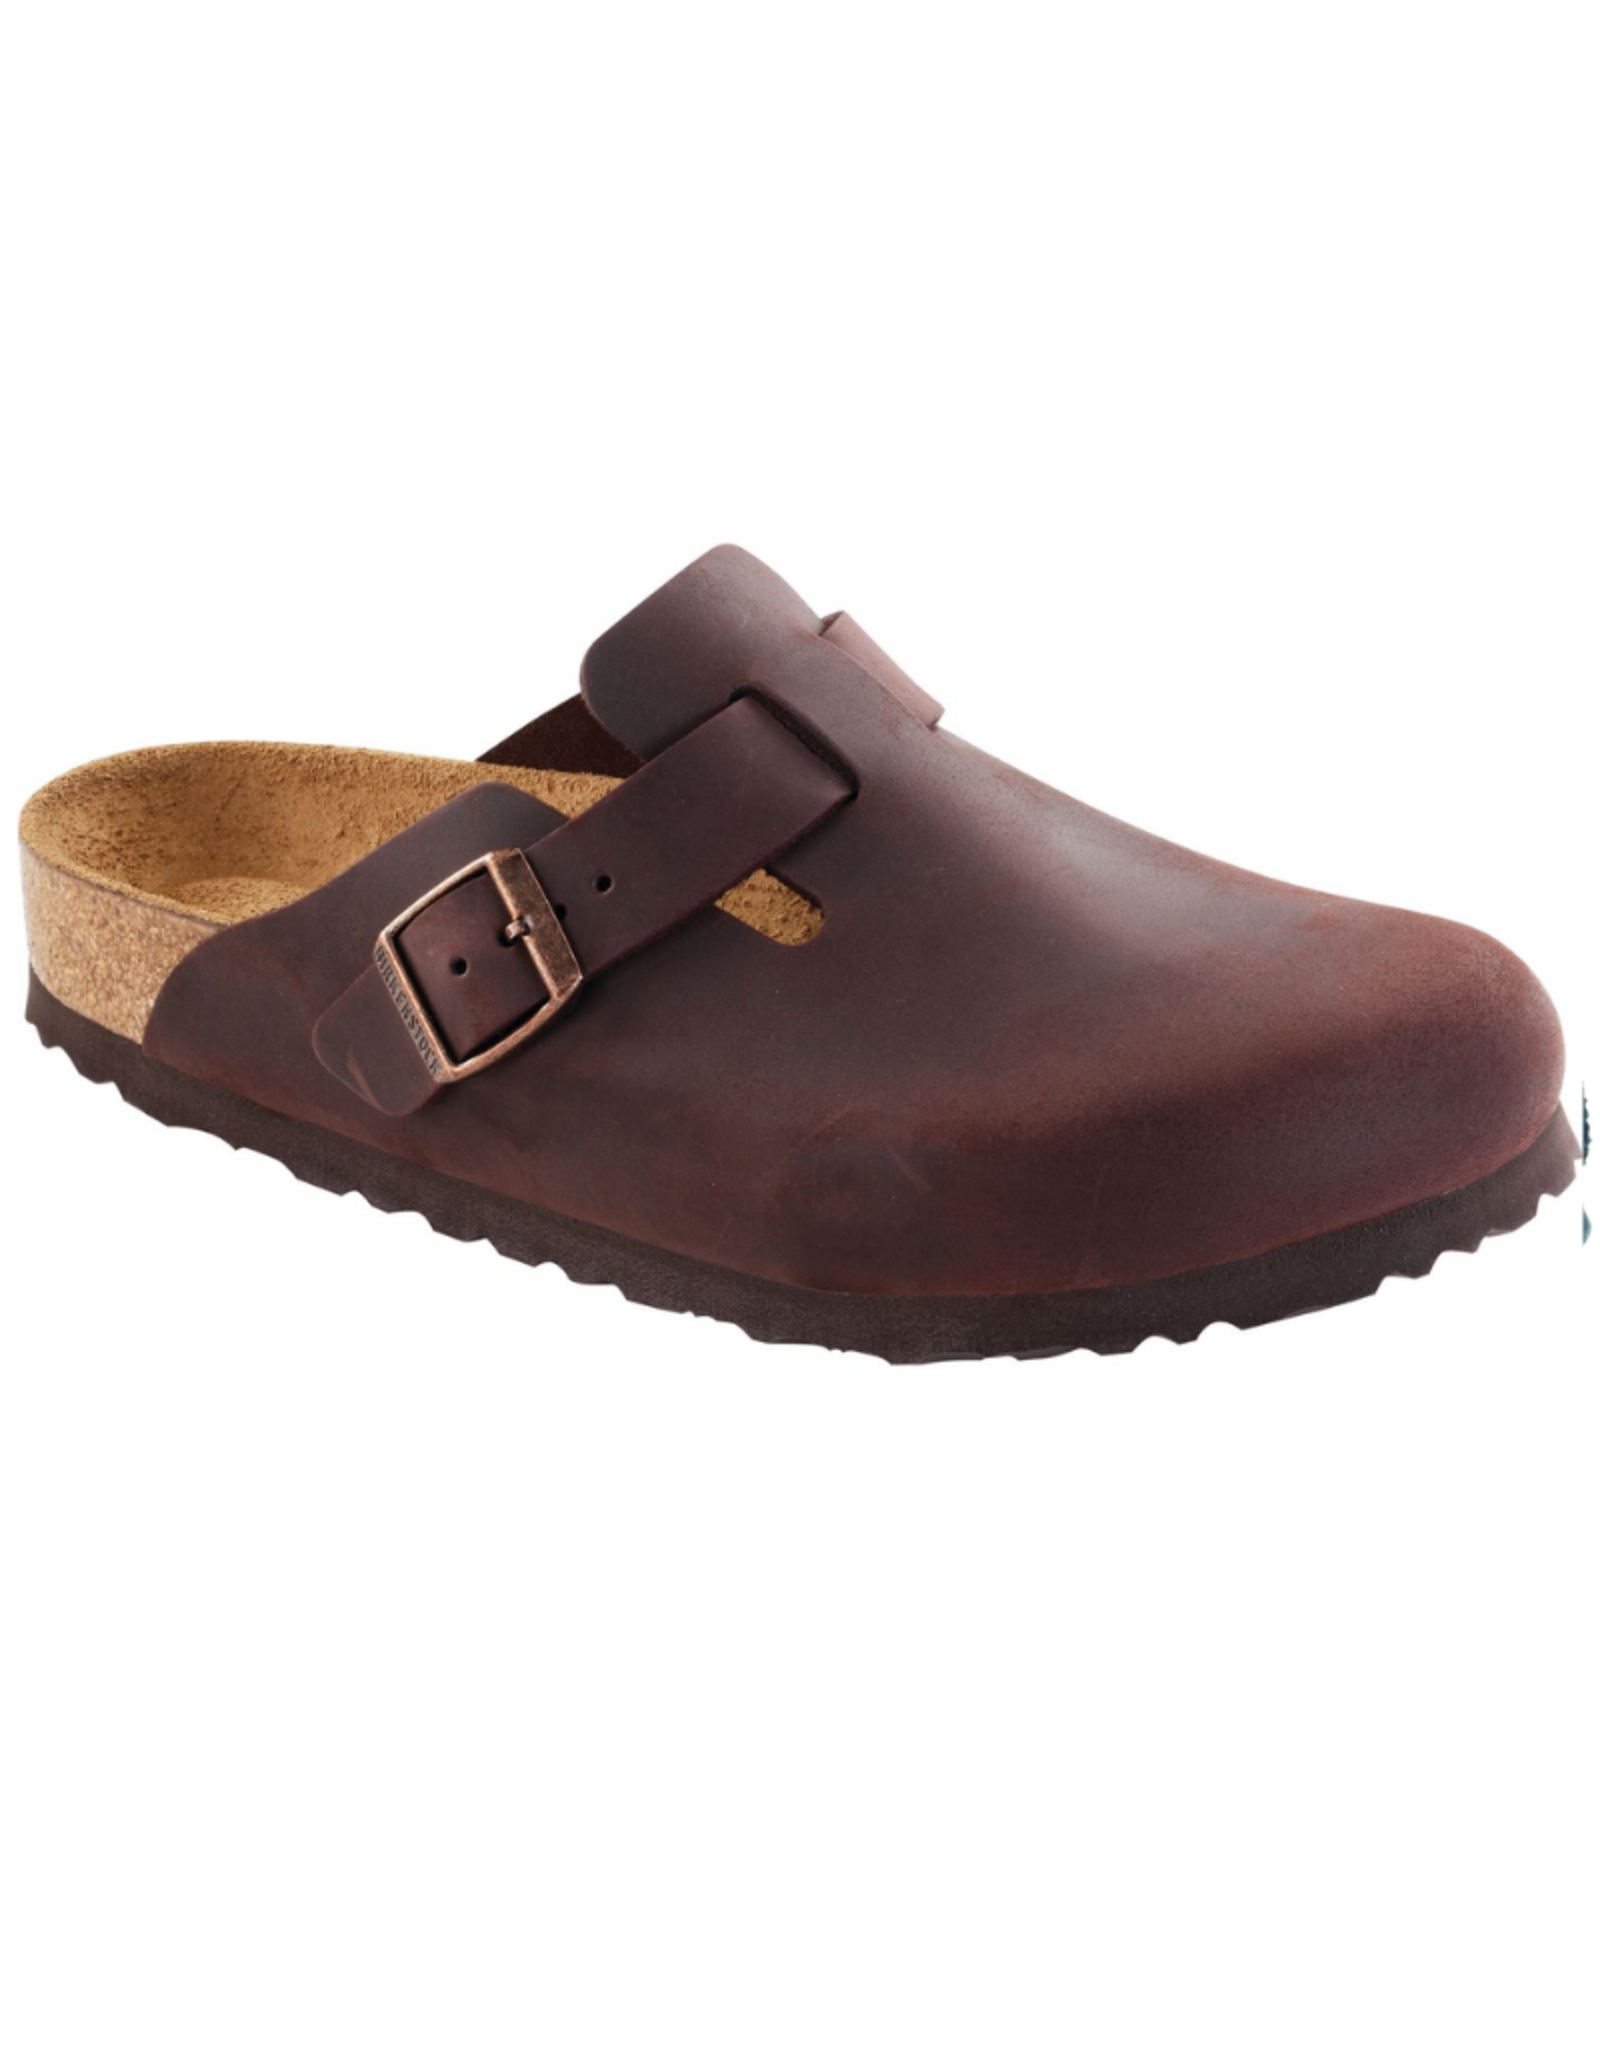 Boston Habana Oiled Leather Soft Footbed